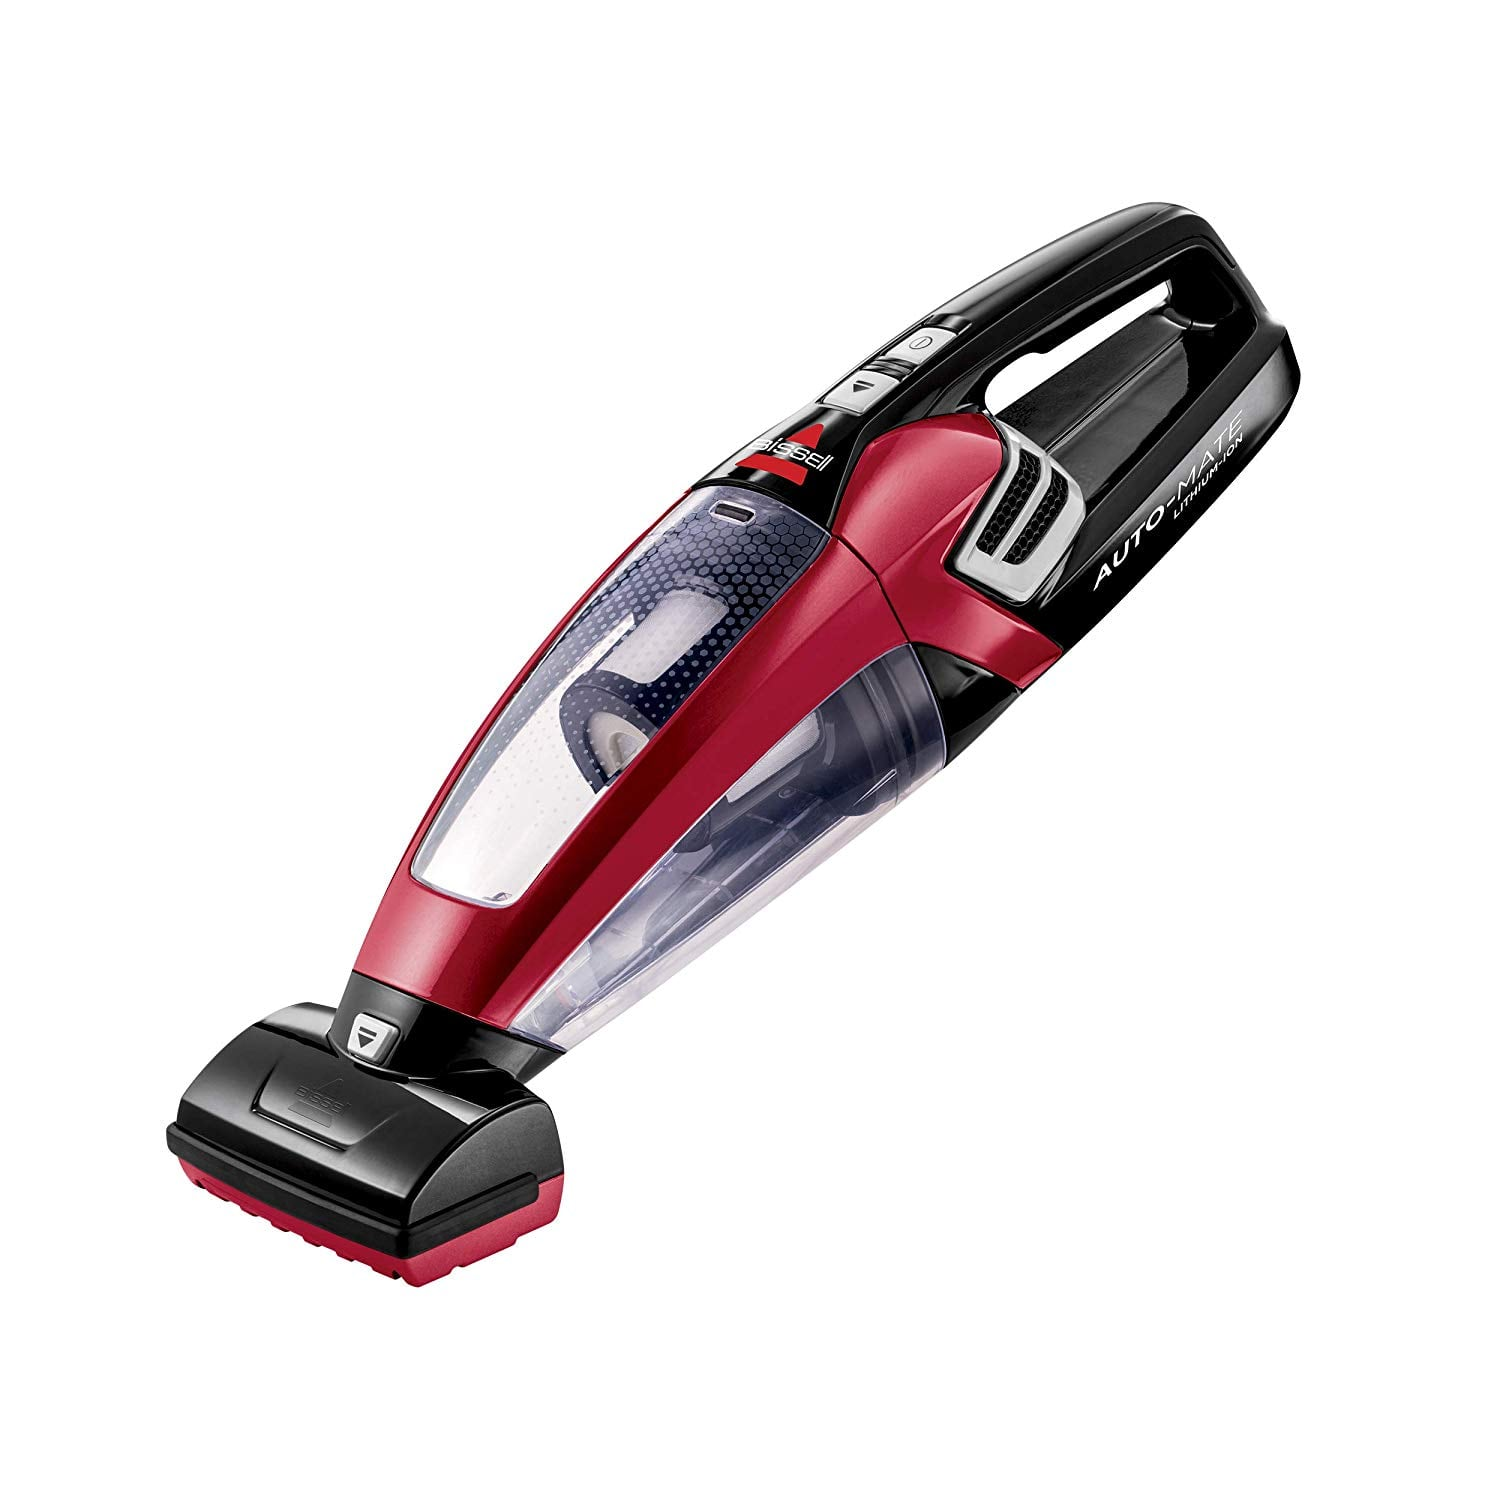 BISSELL AutoMate Lithium Ion Cordless Handheld car Vacuum, 2284W, Red for $40